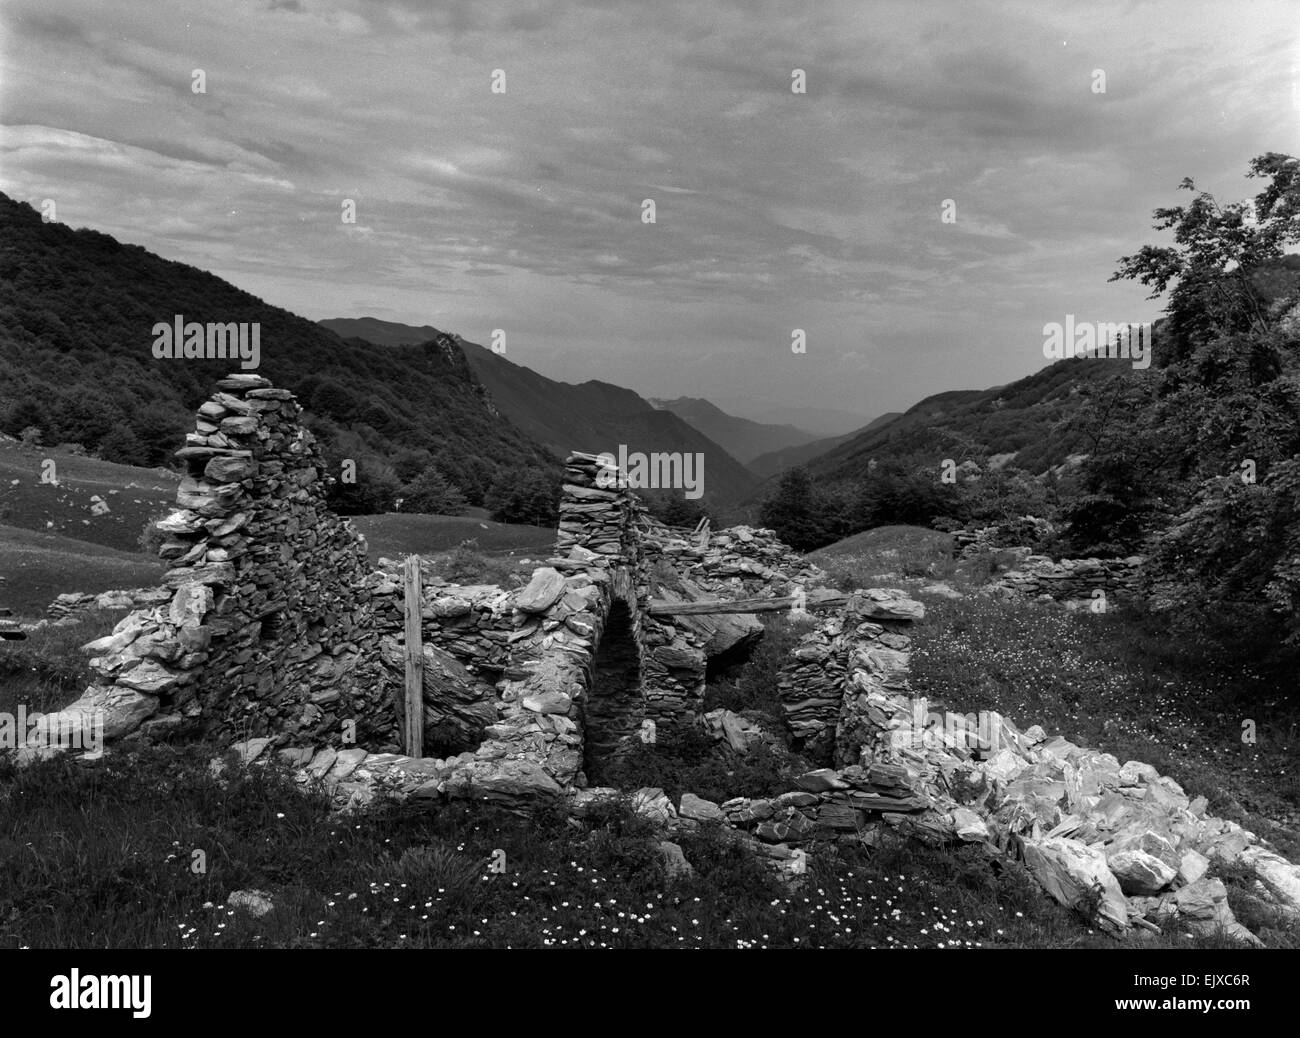 Black and white landscape of ruins in the foreground and mountains in the background under heavy sky. - Stock Image